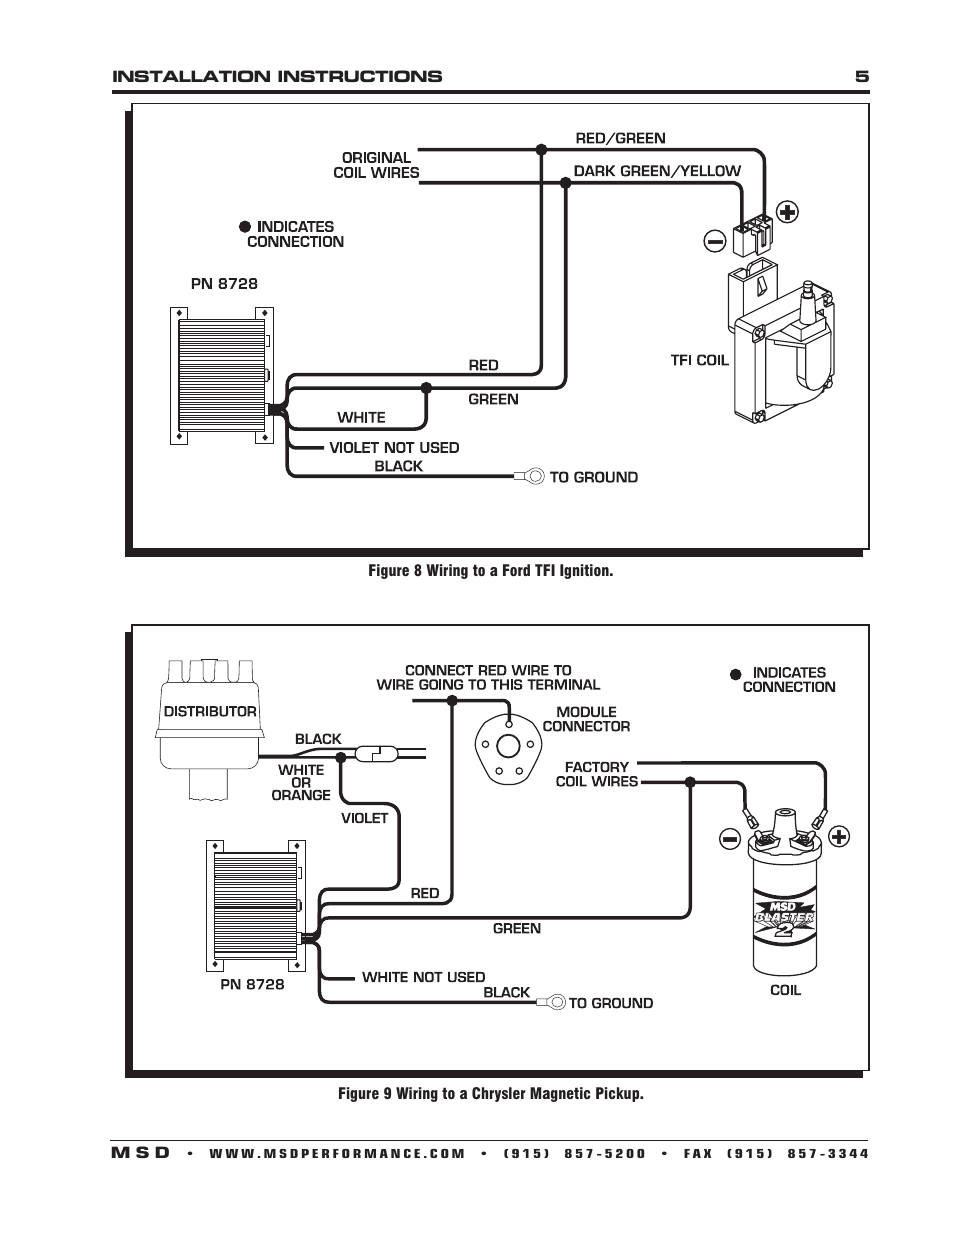 Msd Rpm Activated Switch Wiring Diagram from schematron.org